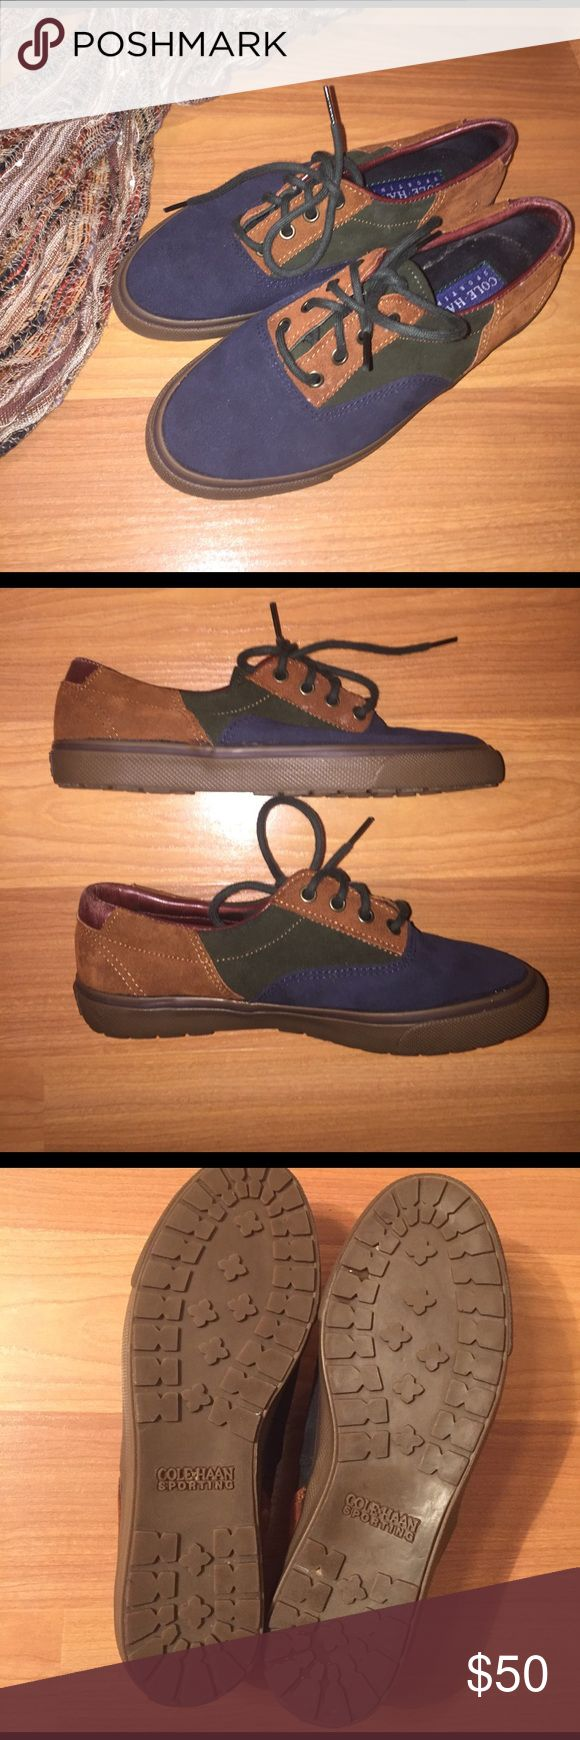 Cole Haan Sporting Lace-ups Only worn once. Brand: Cole Haan. These lace-up tennis shoes are a great casual shoe. Suede leather upper in Navy, forest green, and cognac . Forest green laces. Leather accents on heels and near opening of shoe. Good grip soles. Materials are in near perfect condition. Soles show minimal wear. Please let me know if you'd like an extra pic. Accessories not included. Please let me know if you have any questions. Thanks for looking! Cole Haan Shoes